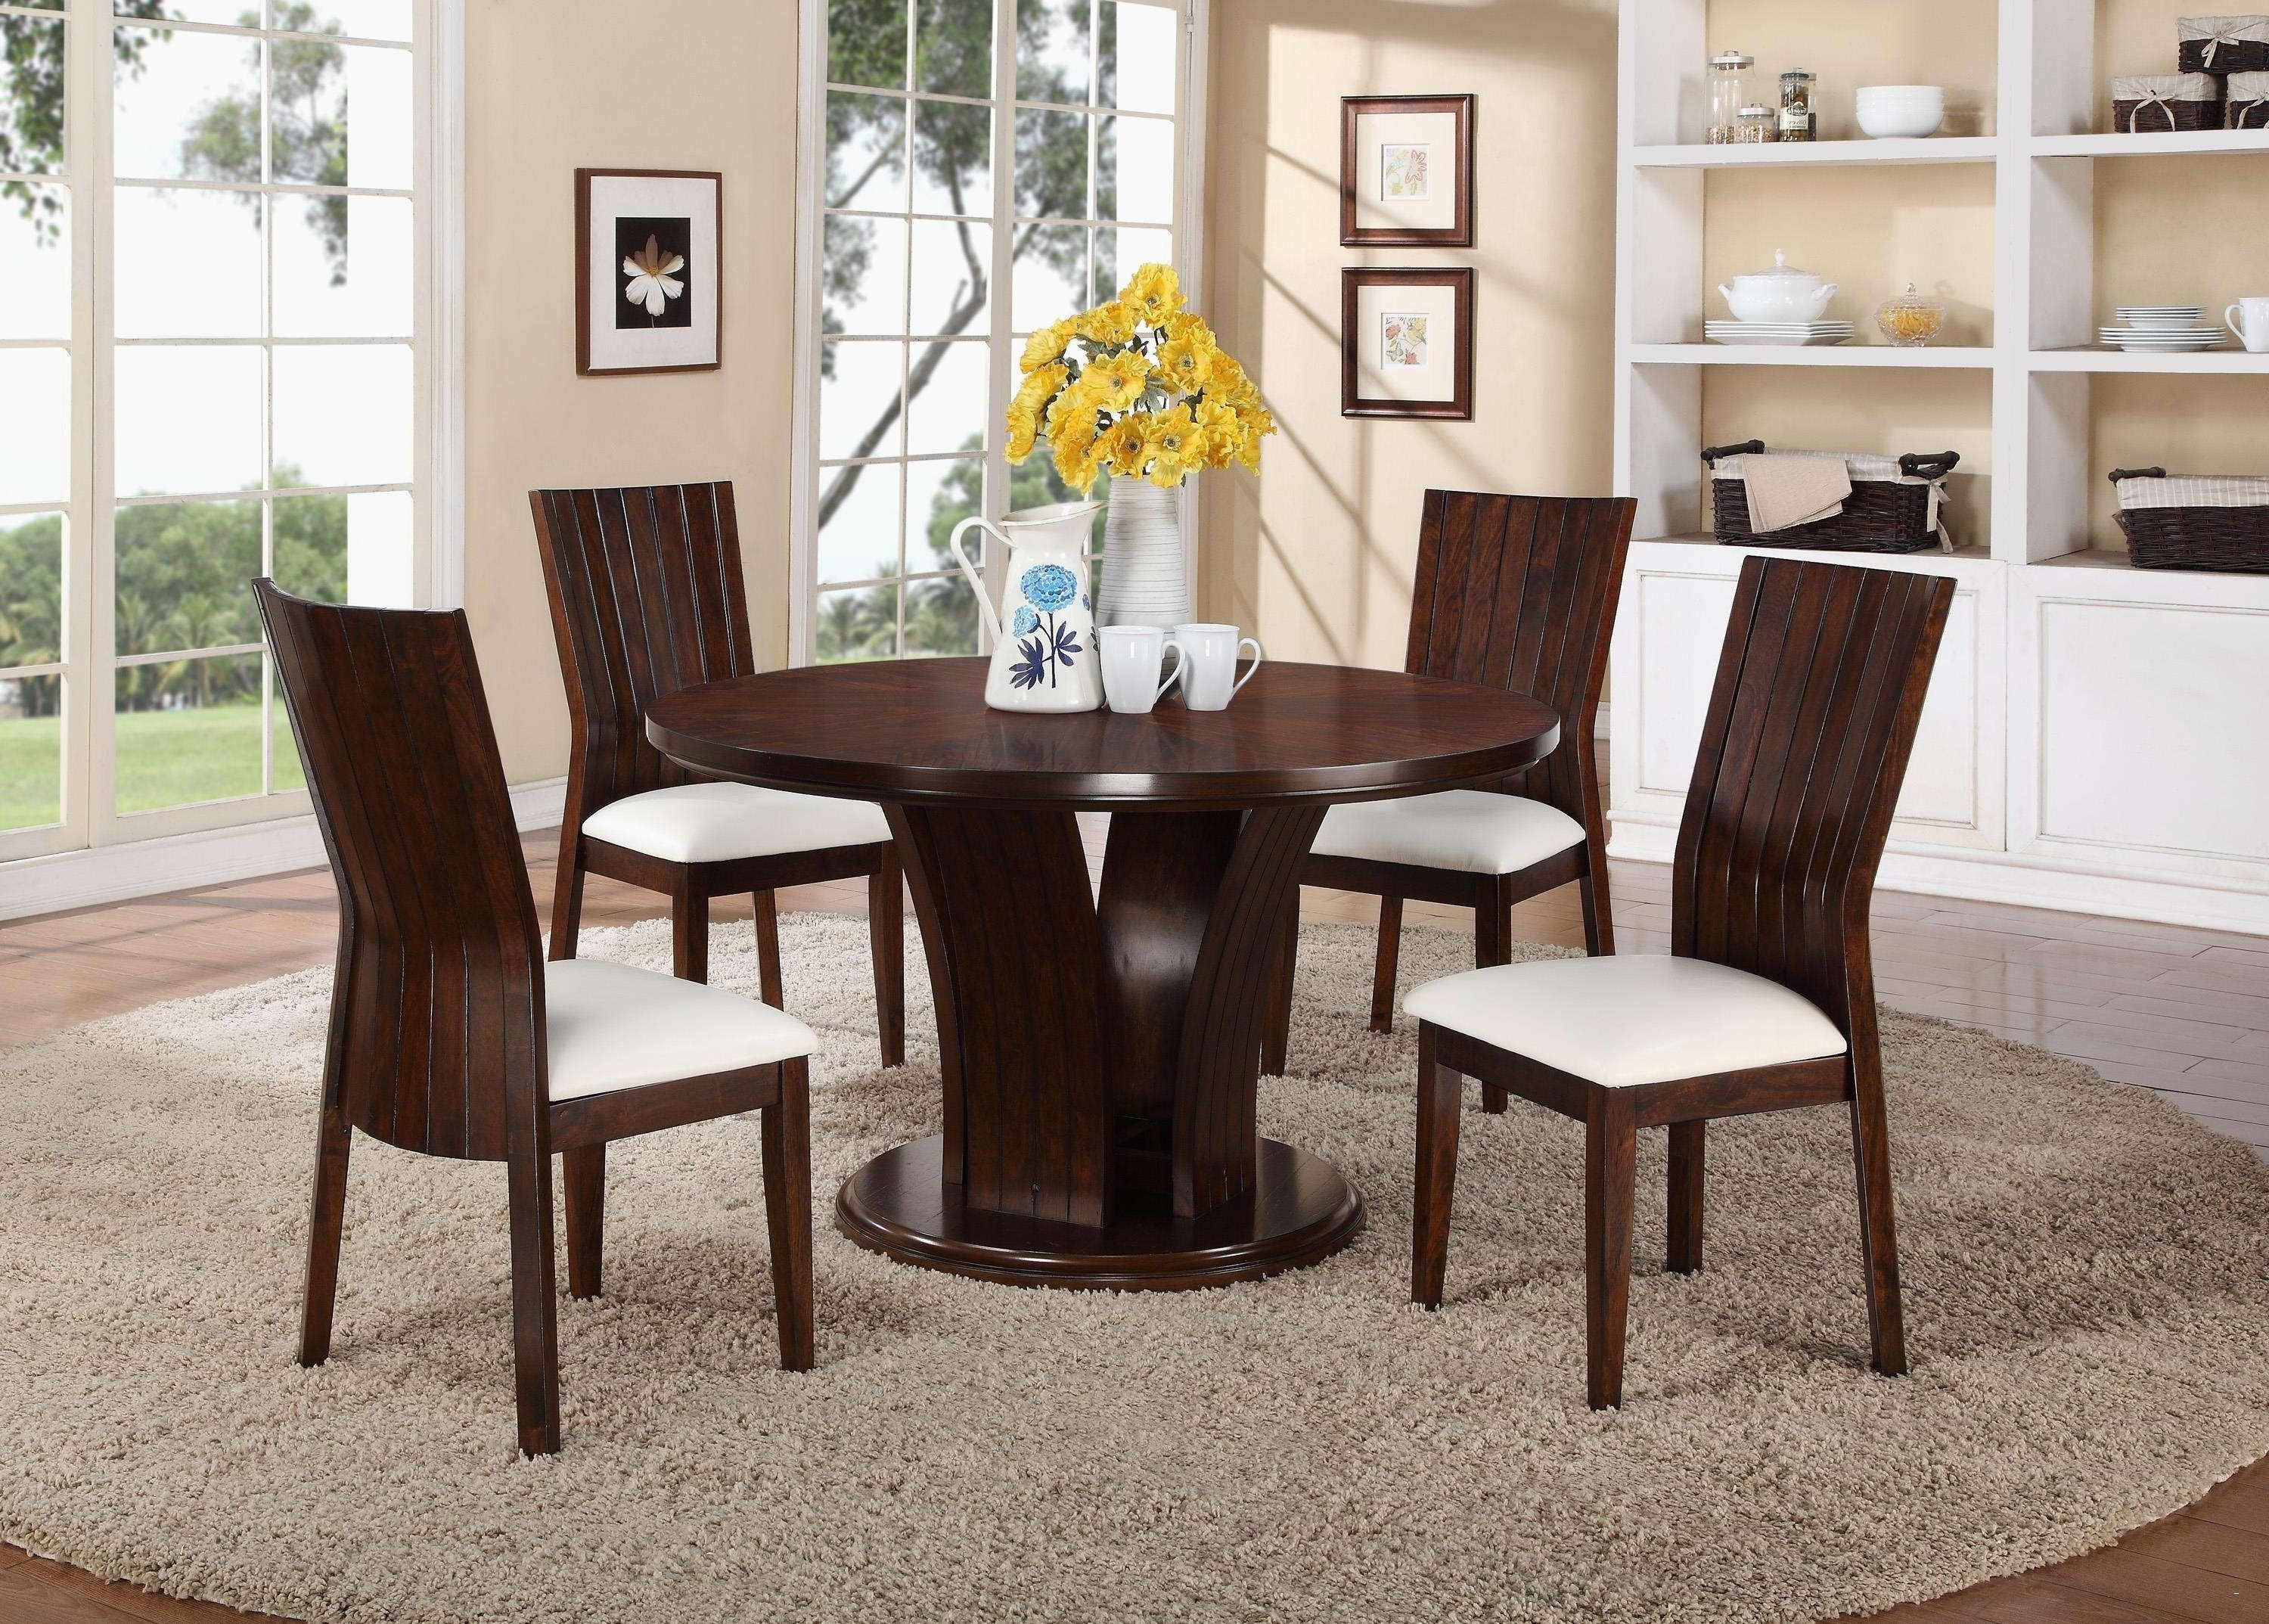 Patterson 6 Piece Dining Sets In Best And Newest Elegant Amish Dining Room Tables At Amish Outdoor Furniture Fresh Od (View 22 of 25)